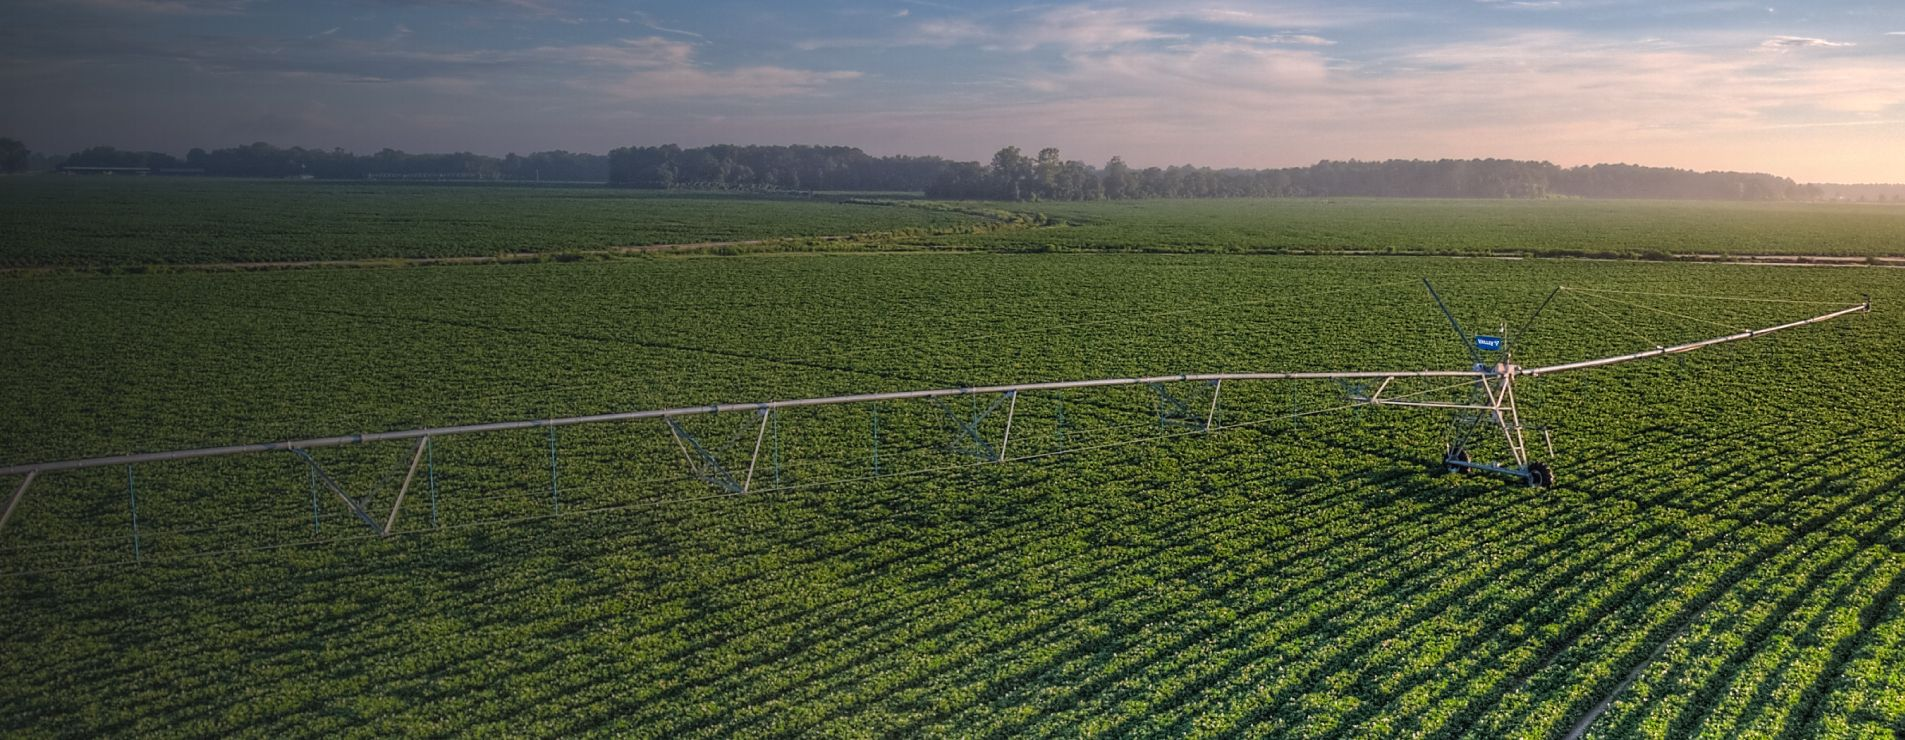 valley irrigation center pivot in a field